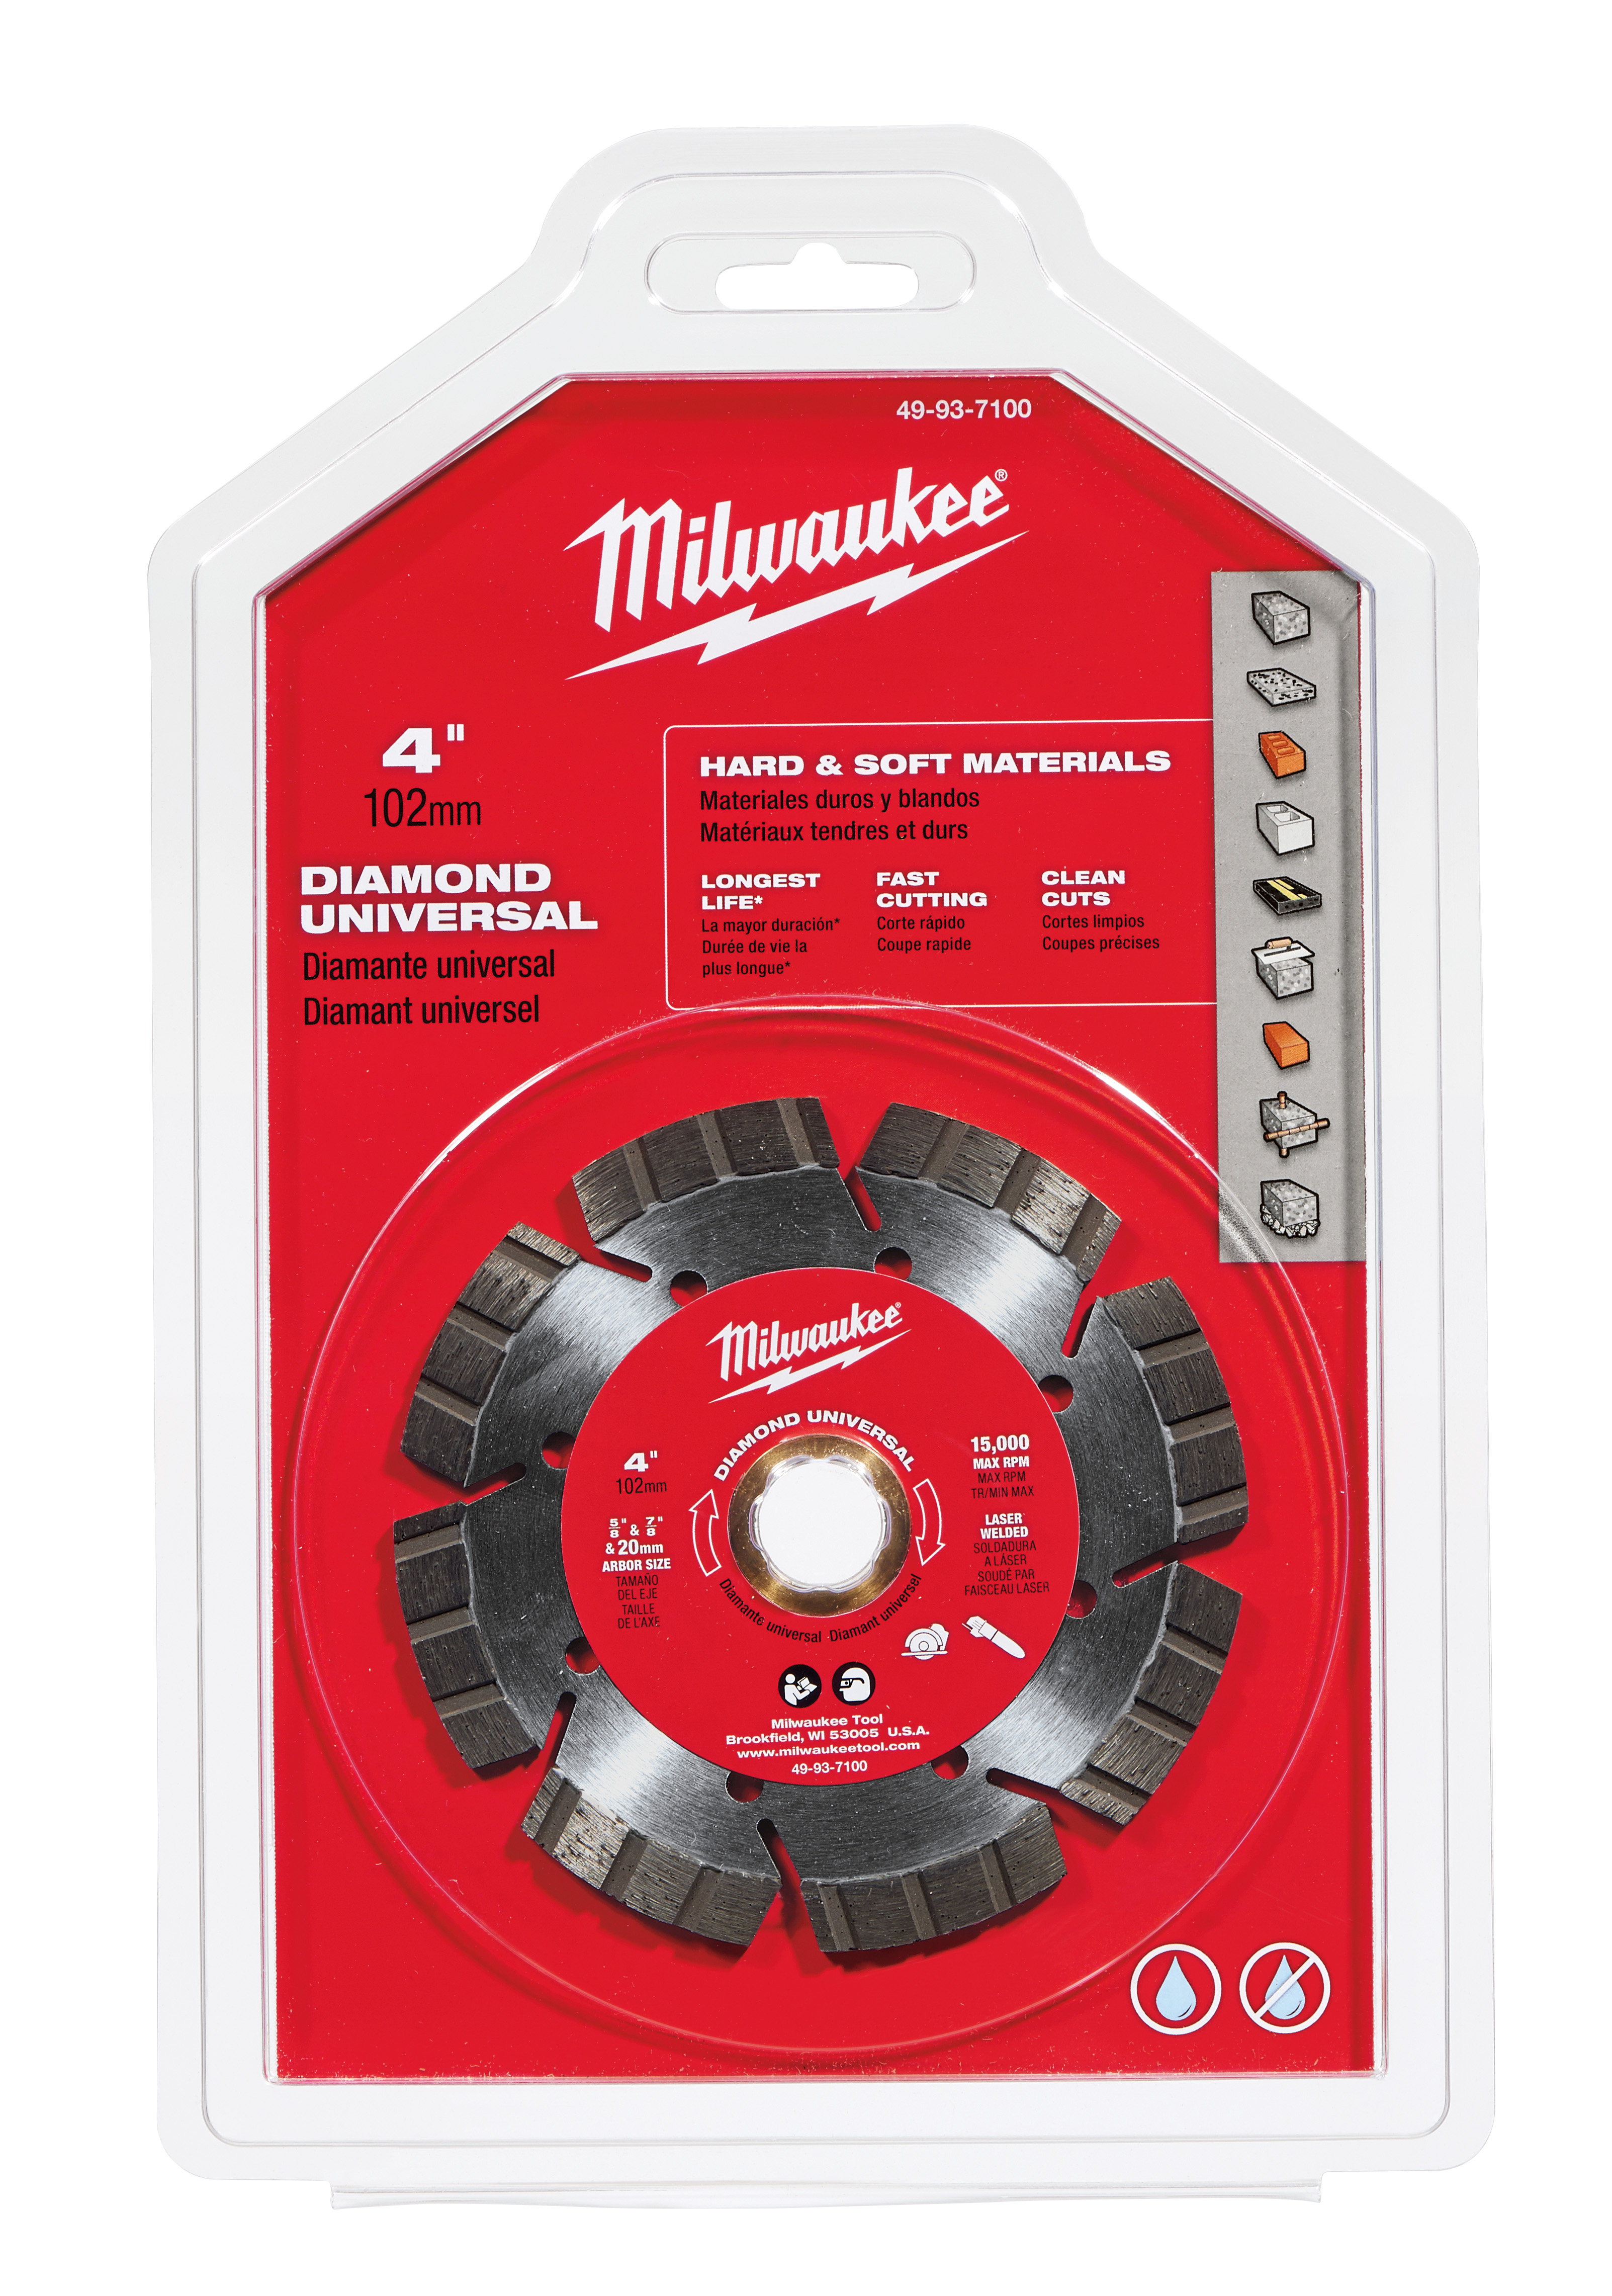 Milwaukee® 49-93-7100 Universal Segmented Turbo Circular Diamond Saw Blade, 4 in Dia Blade, 7/8 in, 20 mm, 5/8 in Arbor/Shank, Dry/Wet Cutting